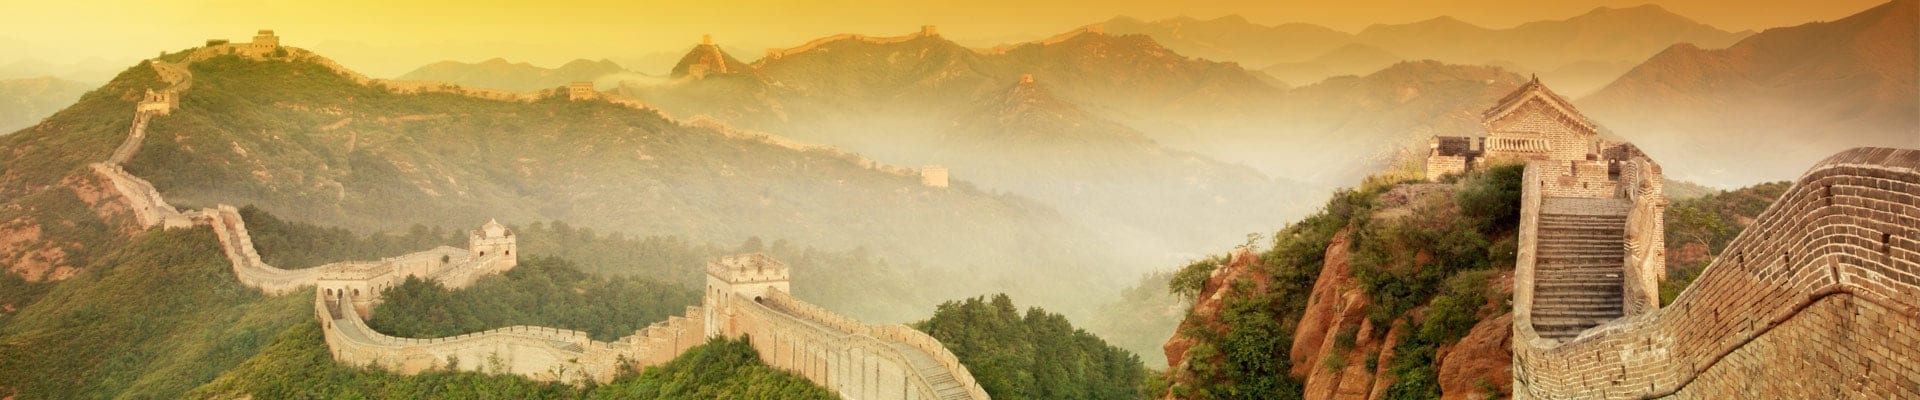 Great Wall of China-main image